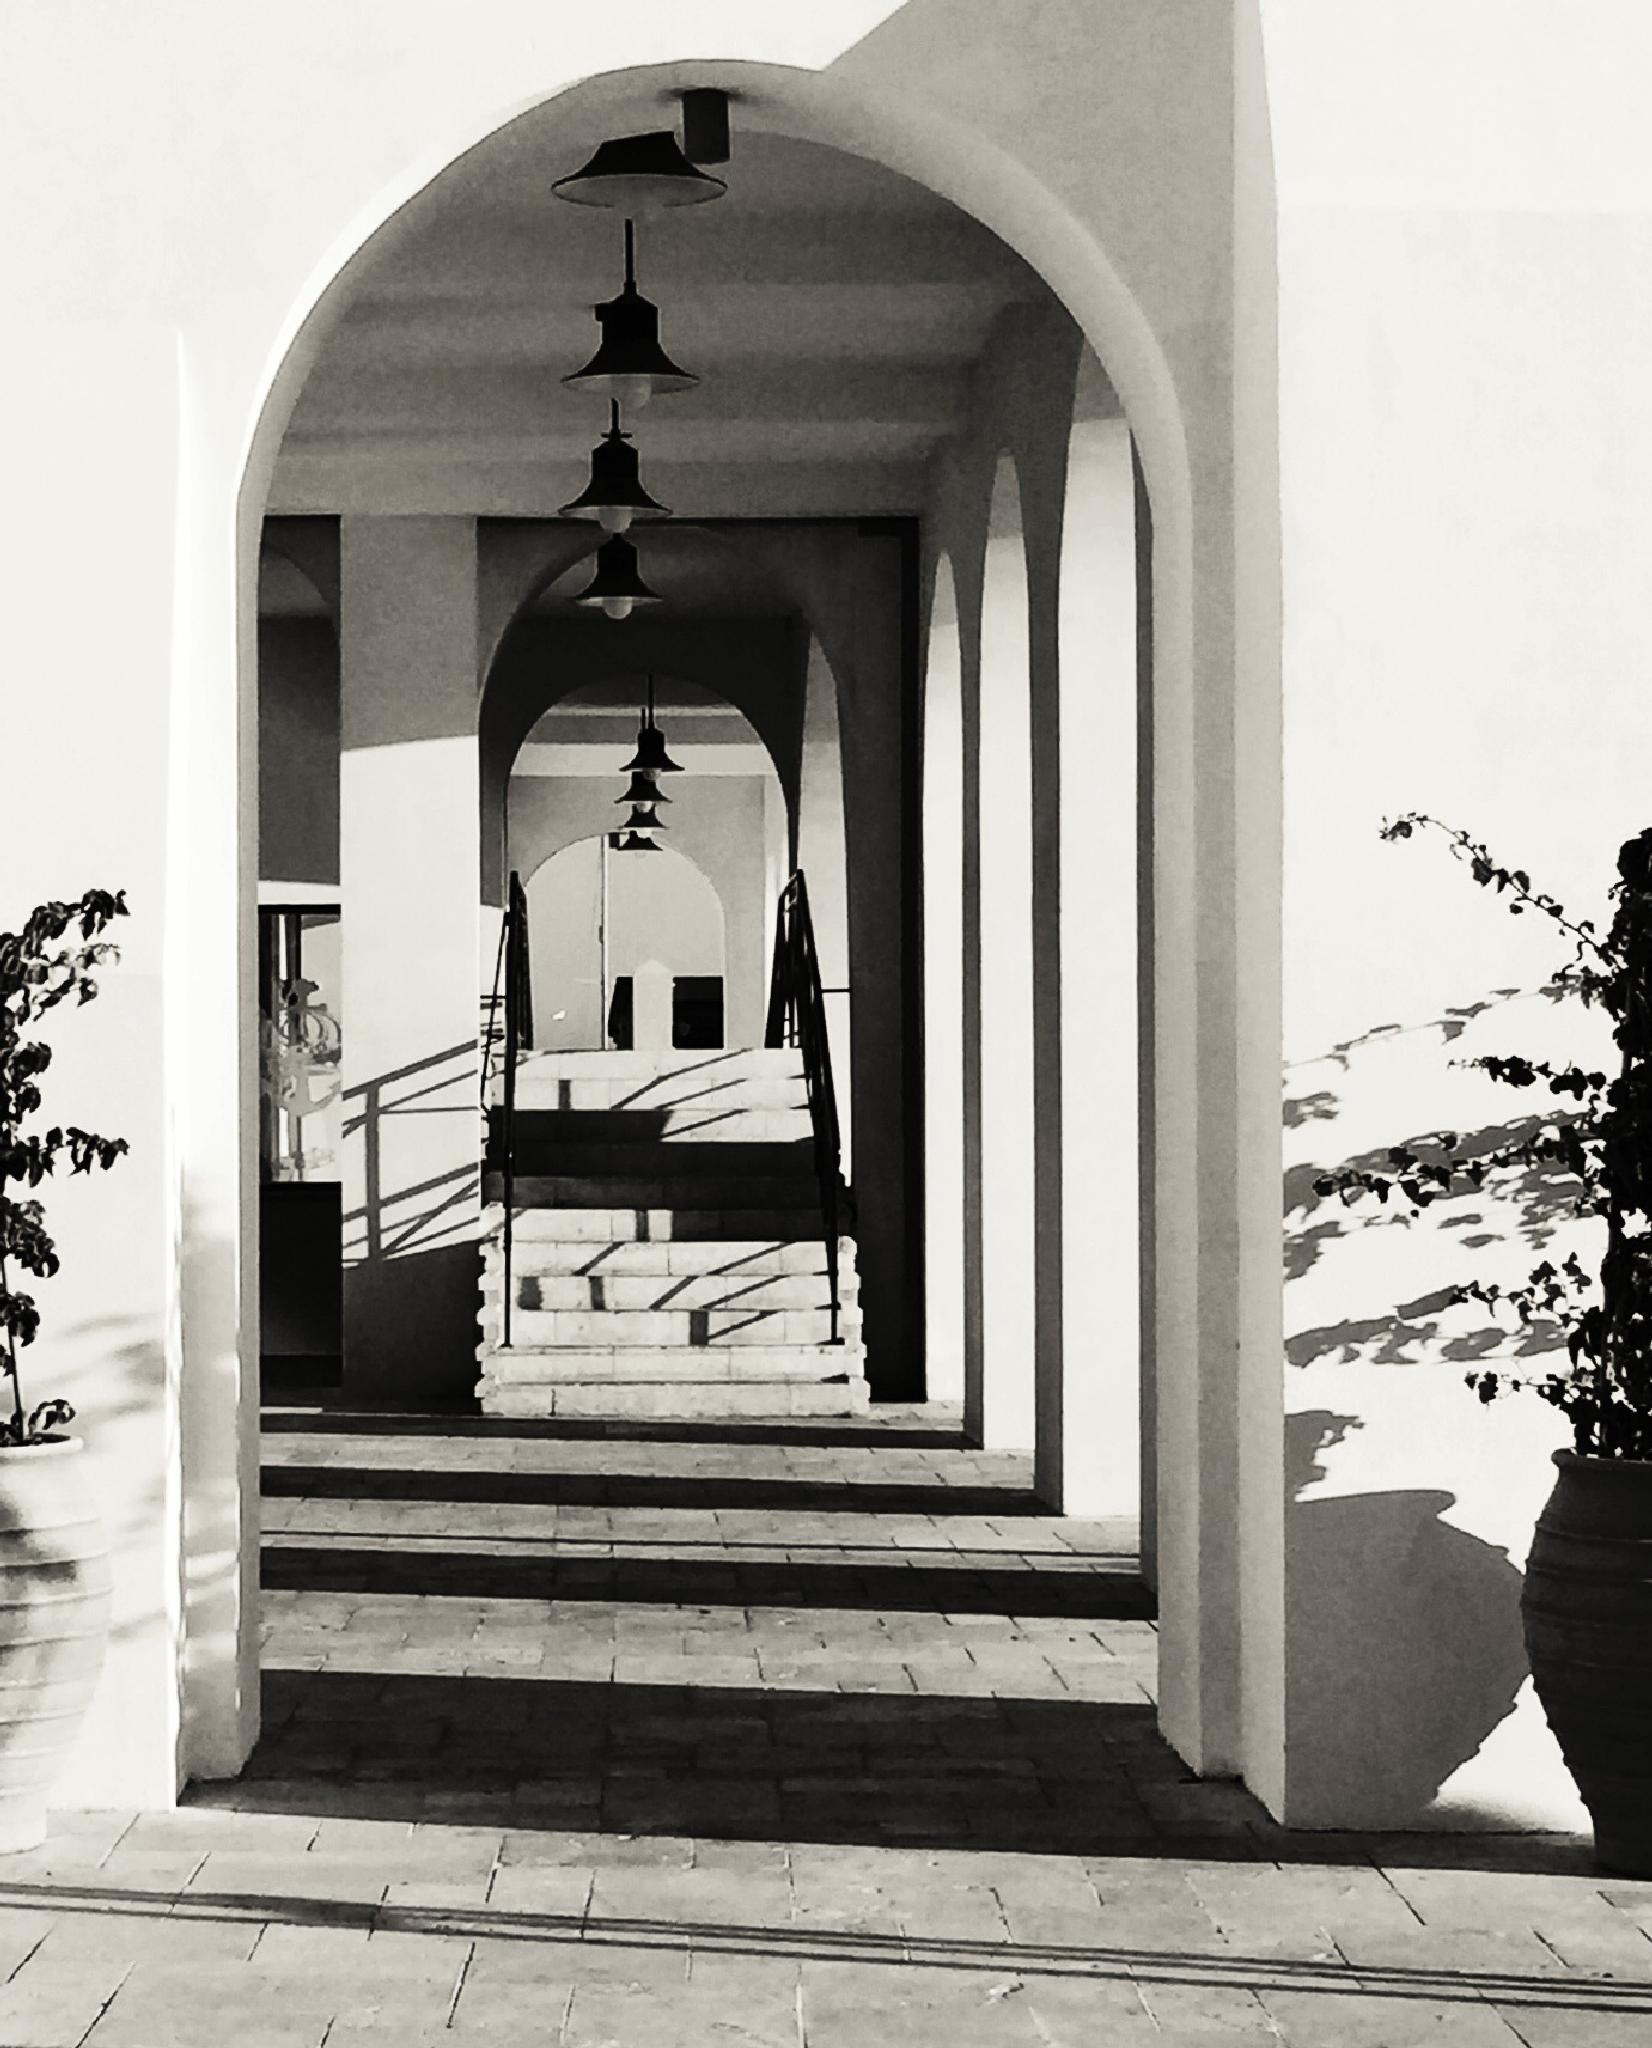 The stairs, in Black and white by Gayle